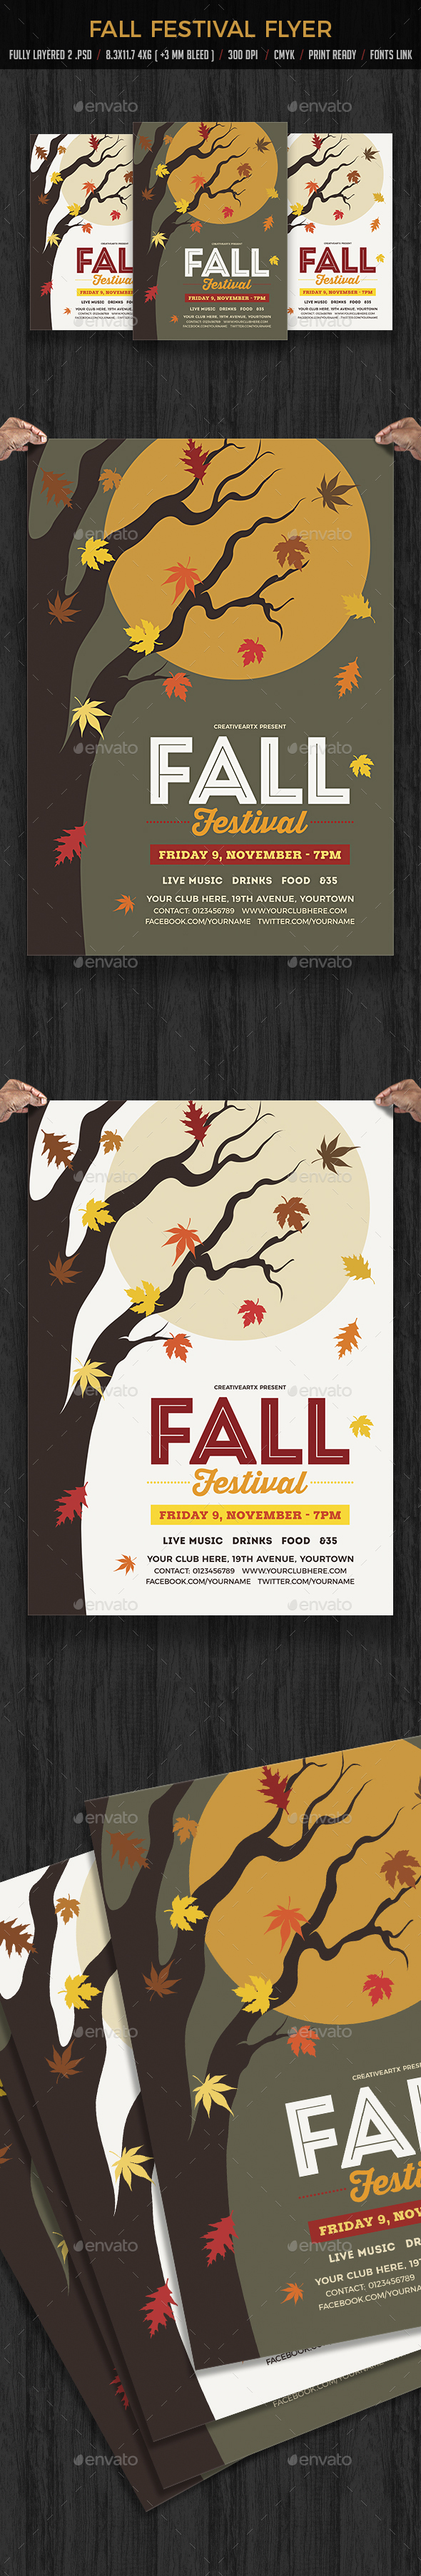 Fall Festival Flyer Template - Events Flyers